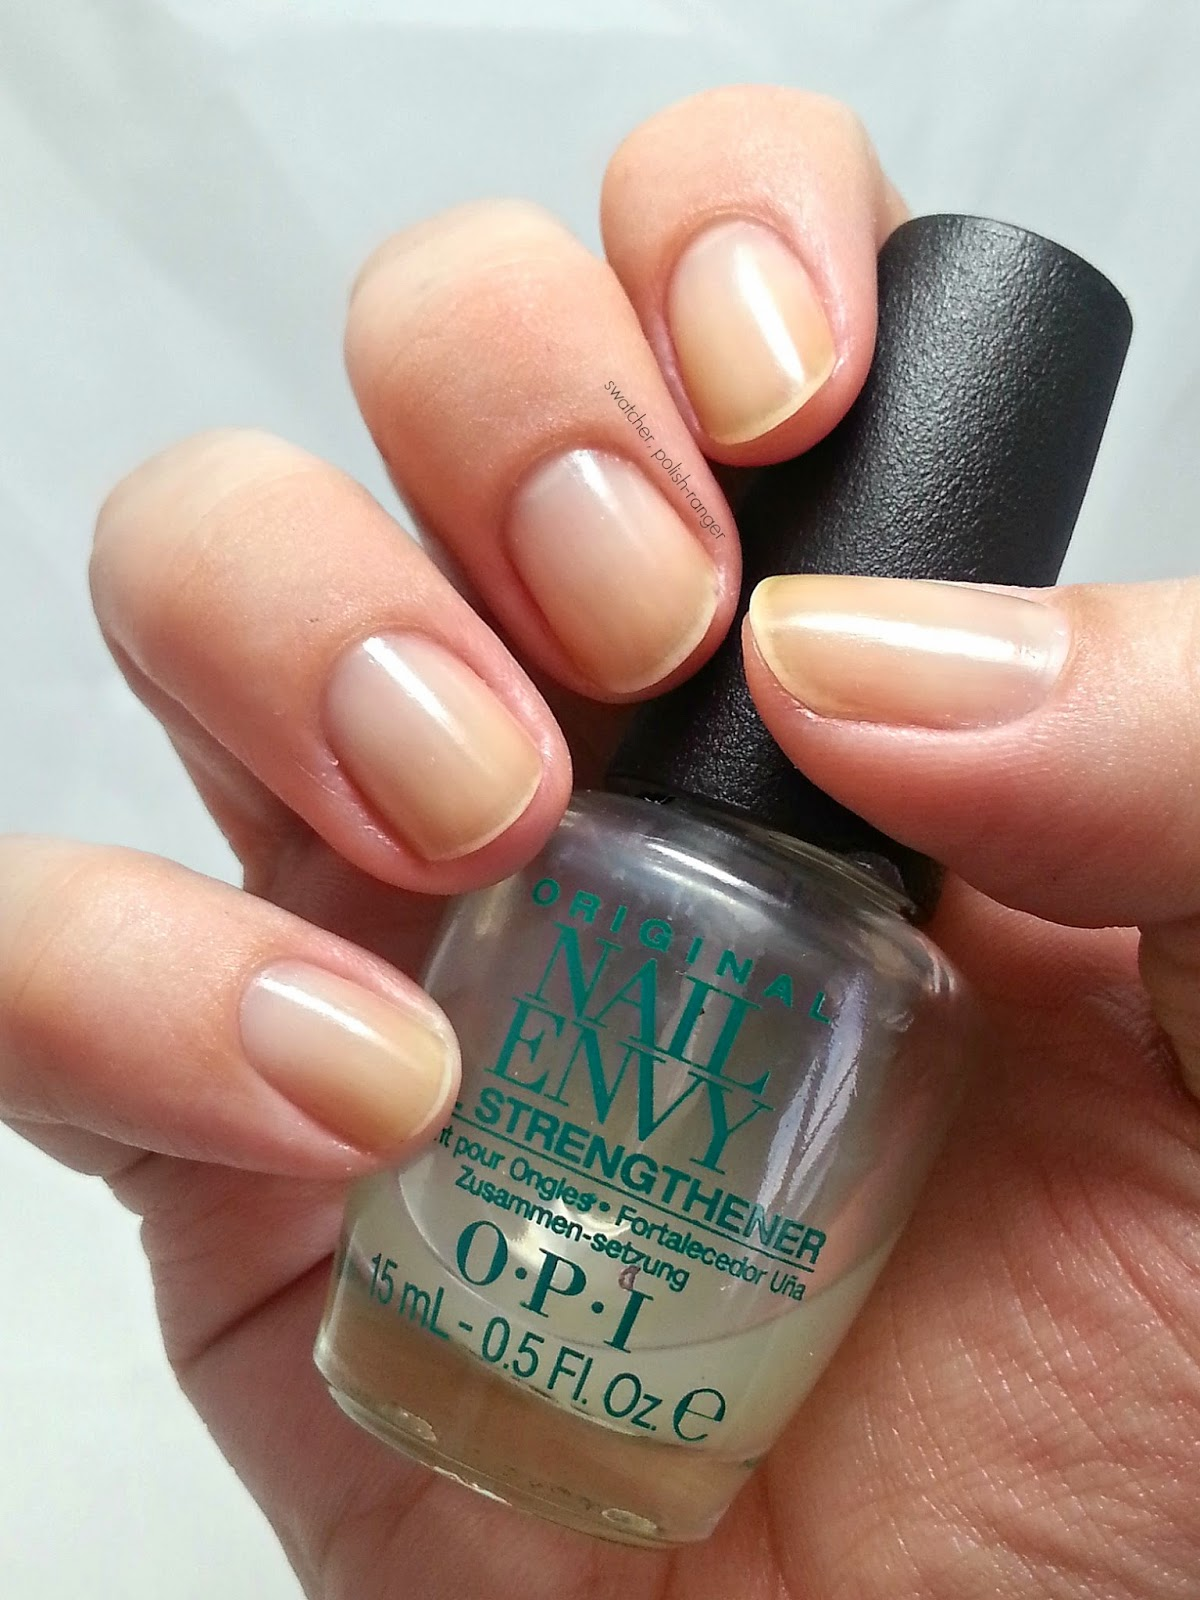 imPress press-on manicure review : Holla